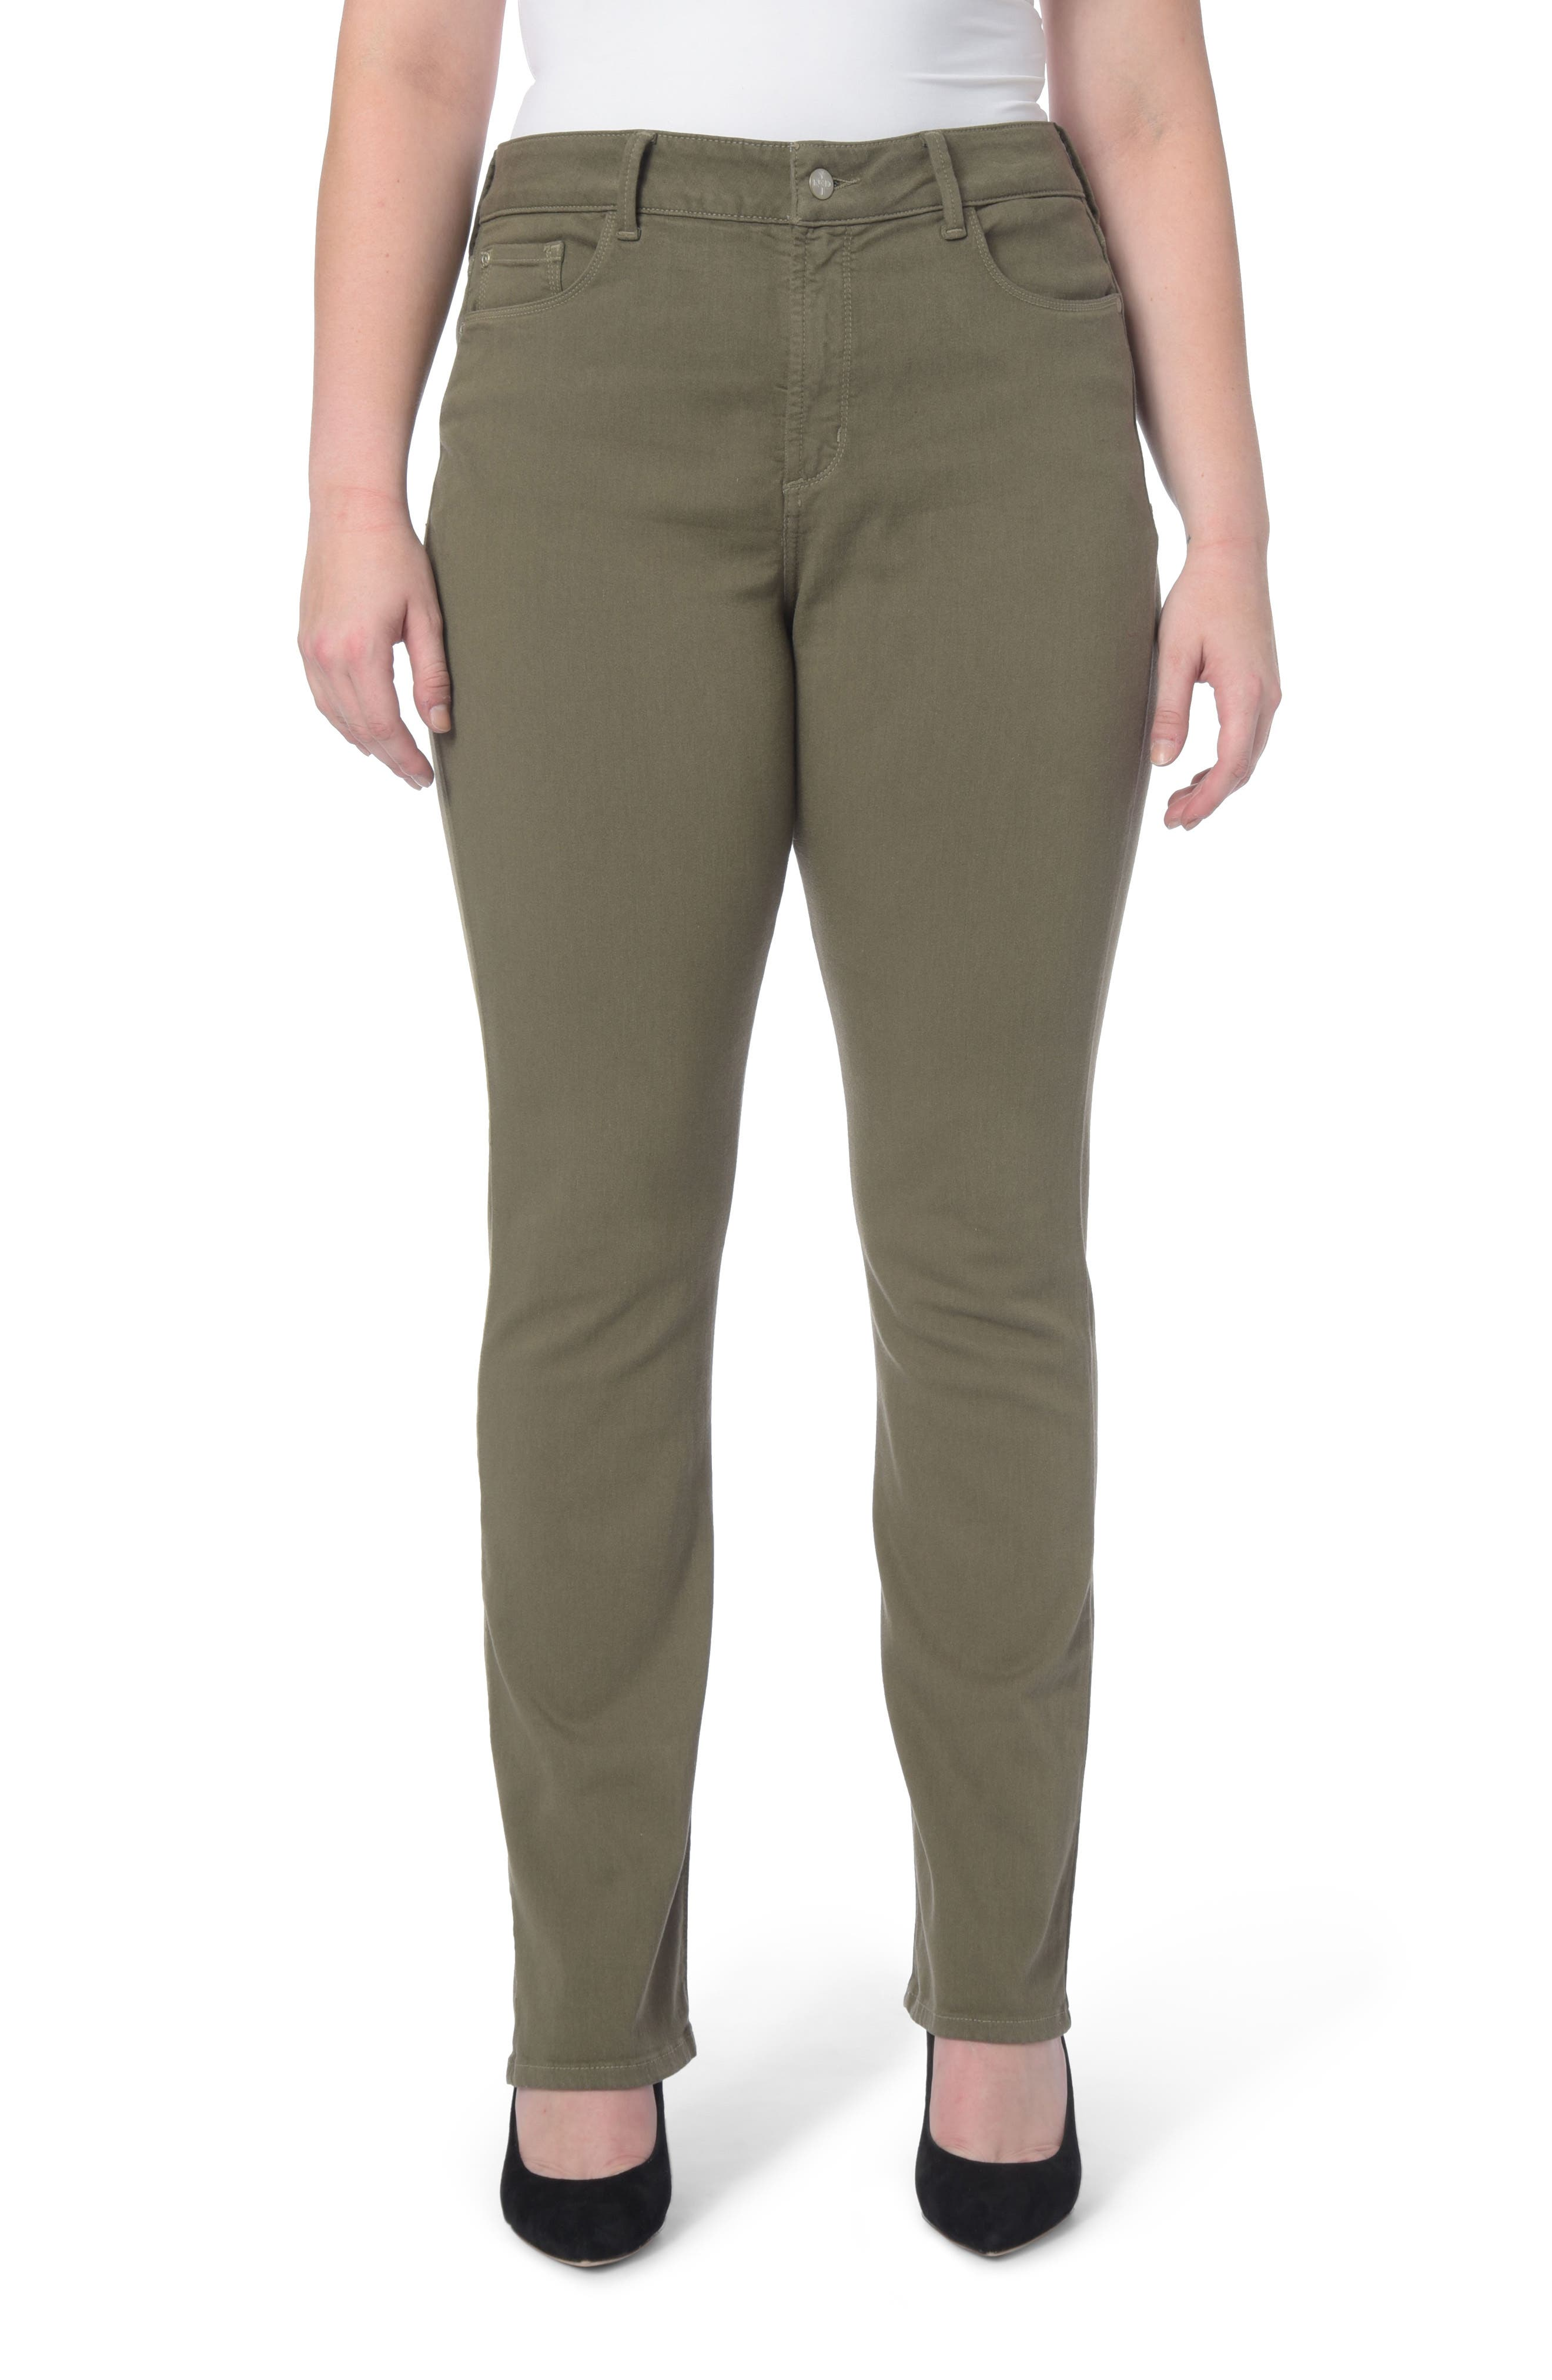 Alternate Image 1 Selected - NYDJ Marilyn Stretch Straight Leg Jeans (Plus Size)